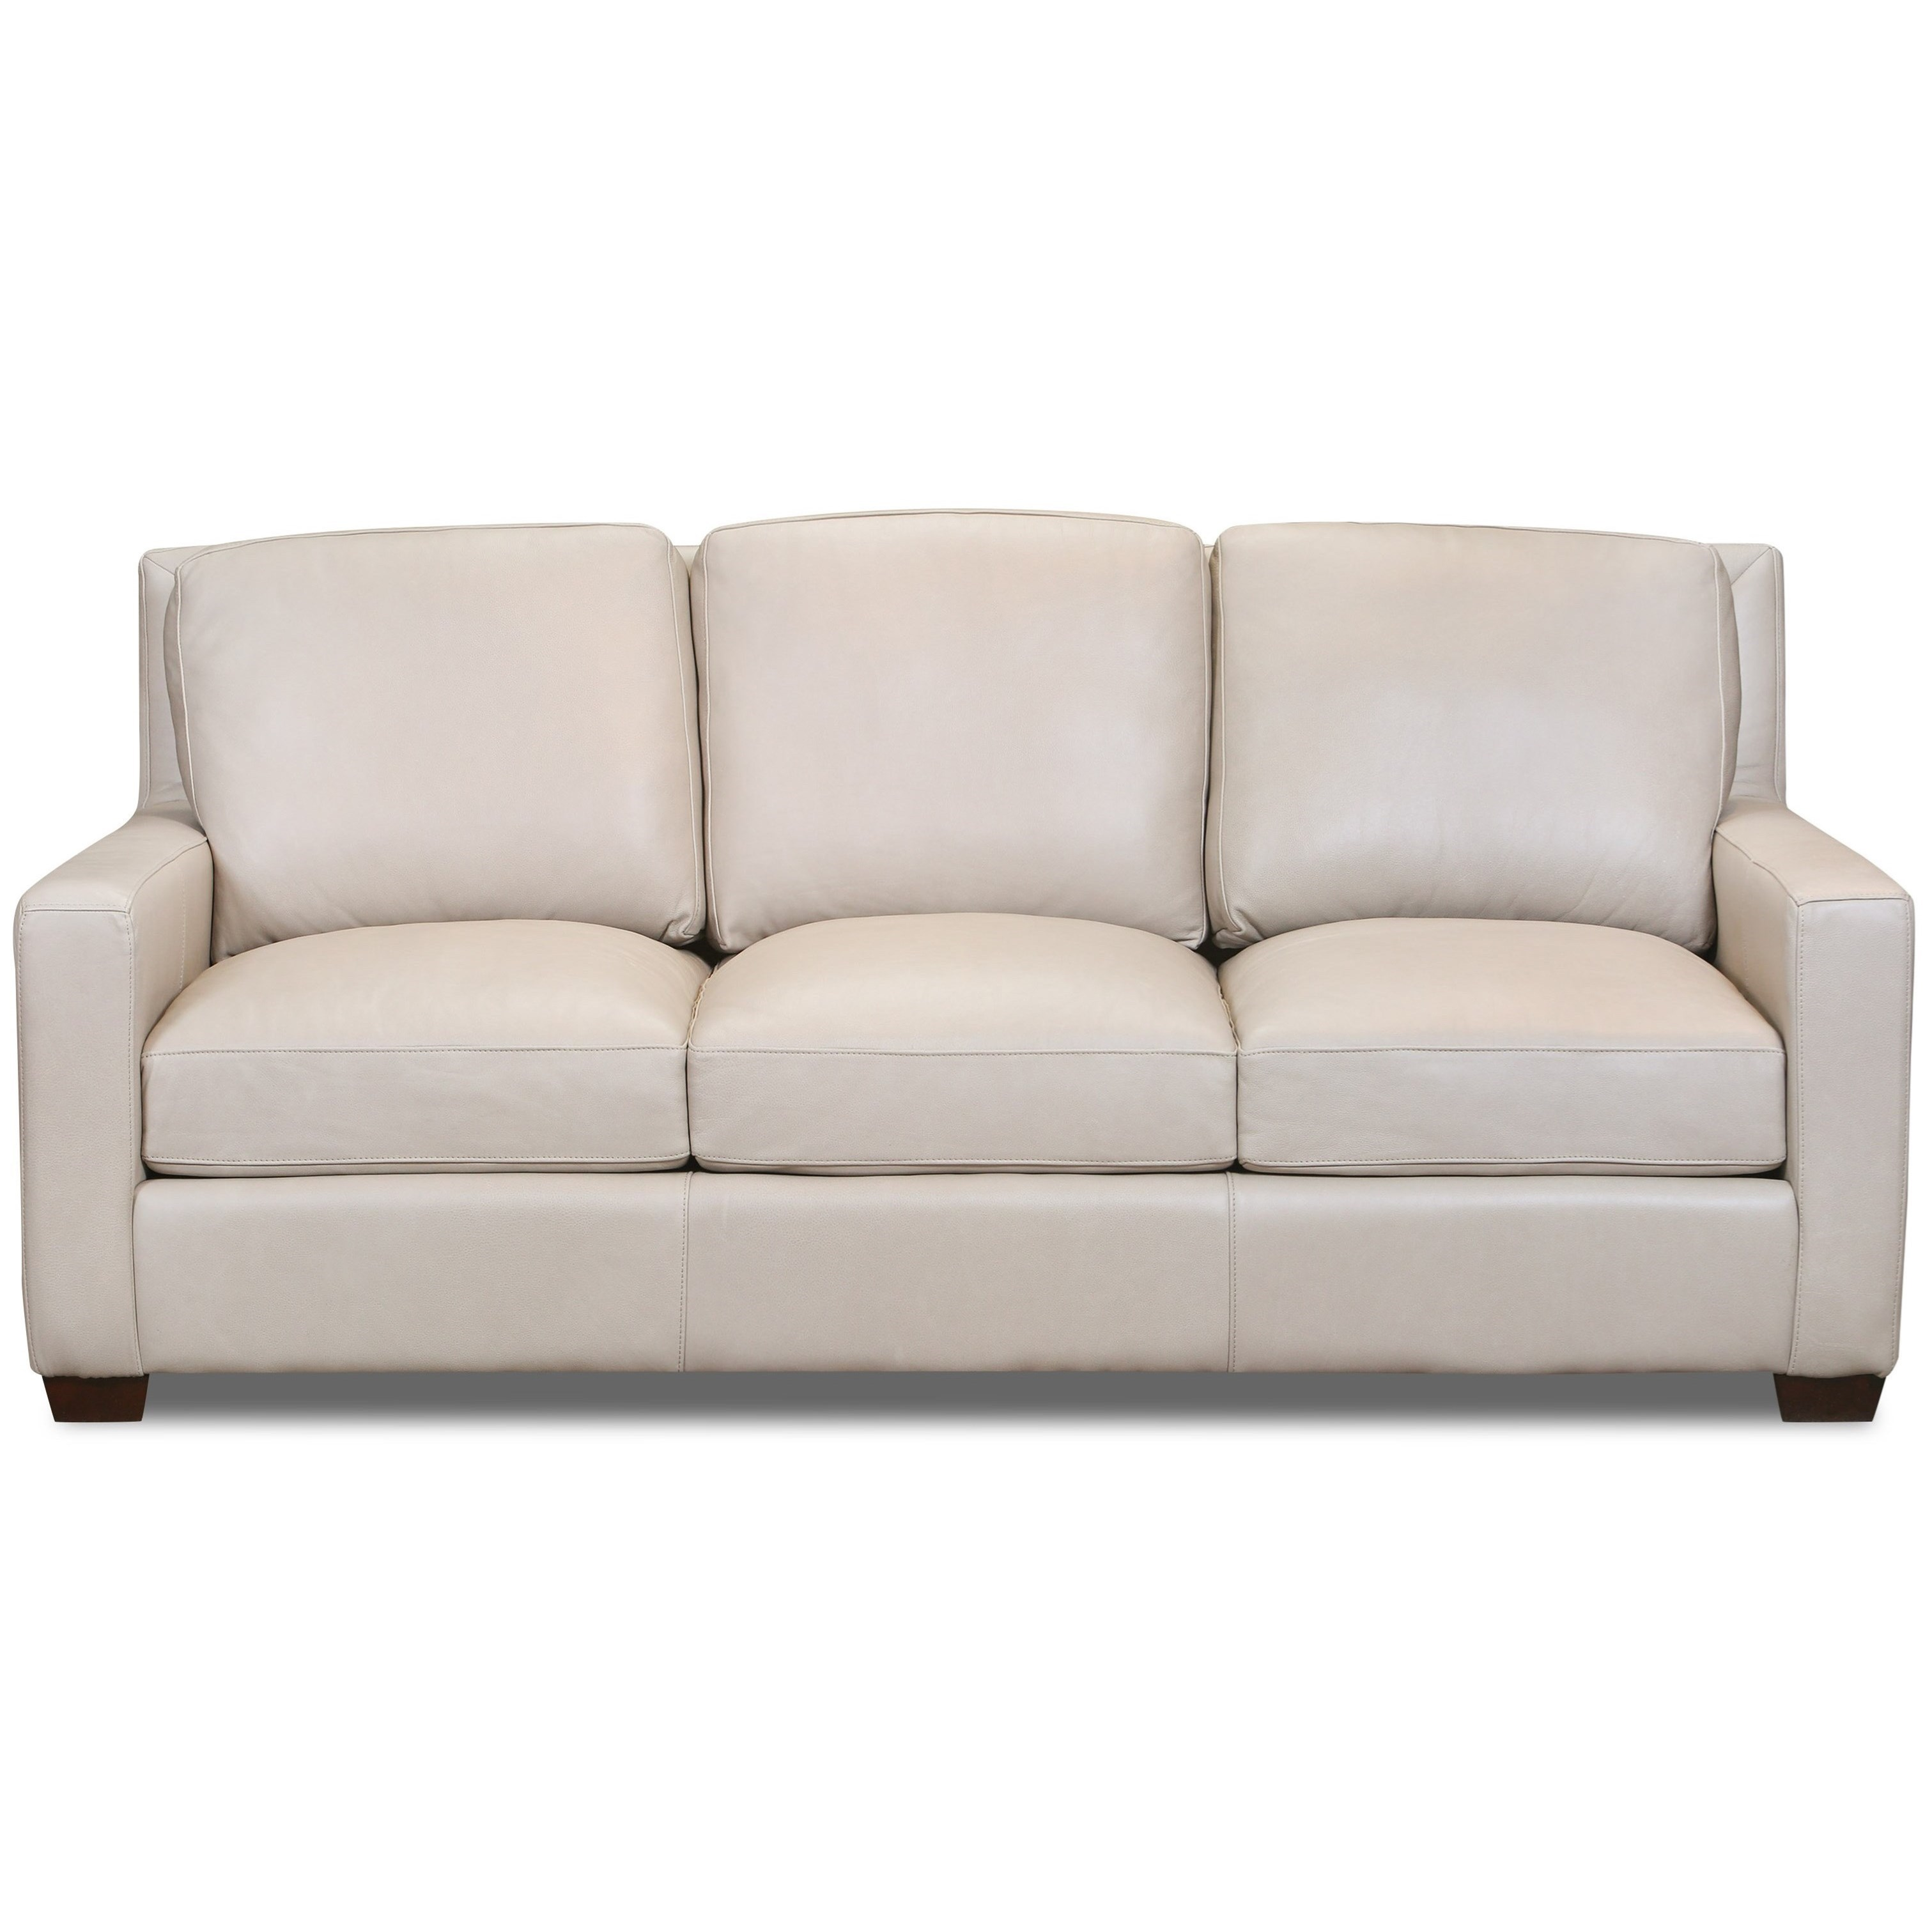 6350 Modern Top Grain Leather Sofa by USA Premium Leather at Godby Home Furnishings